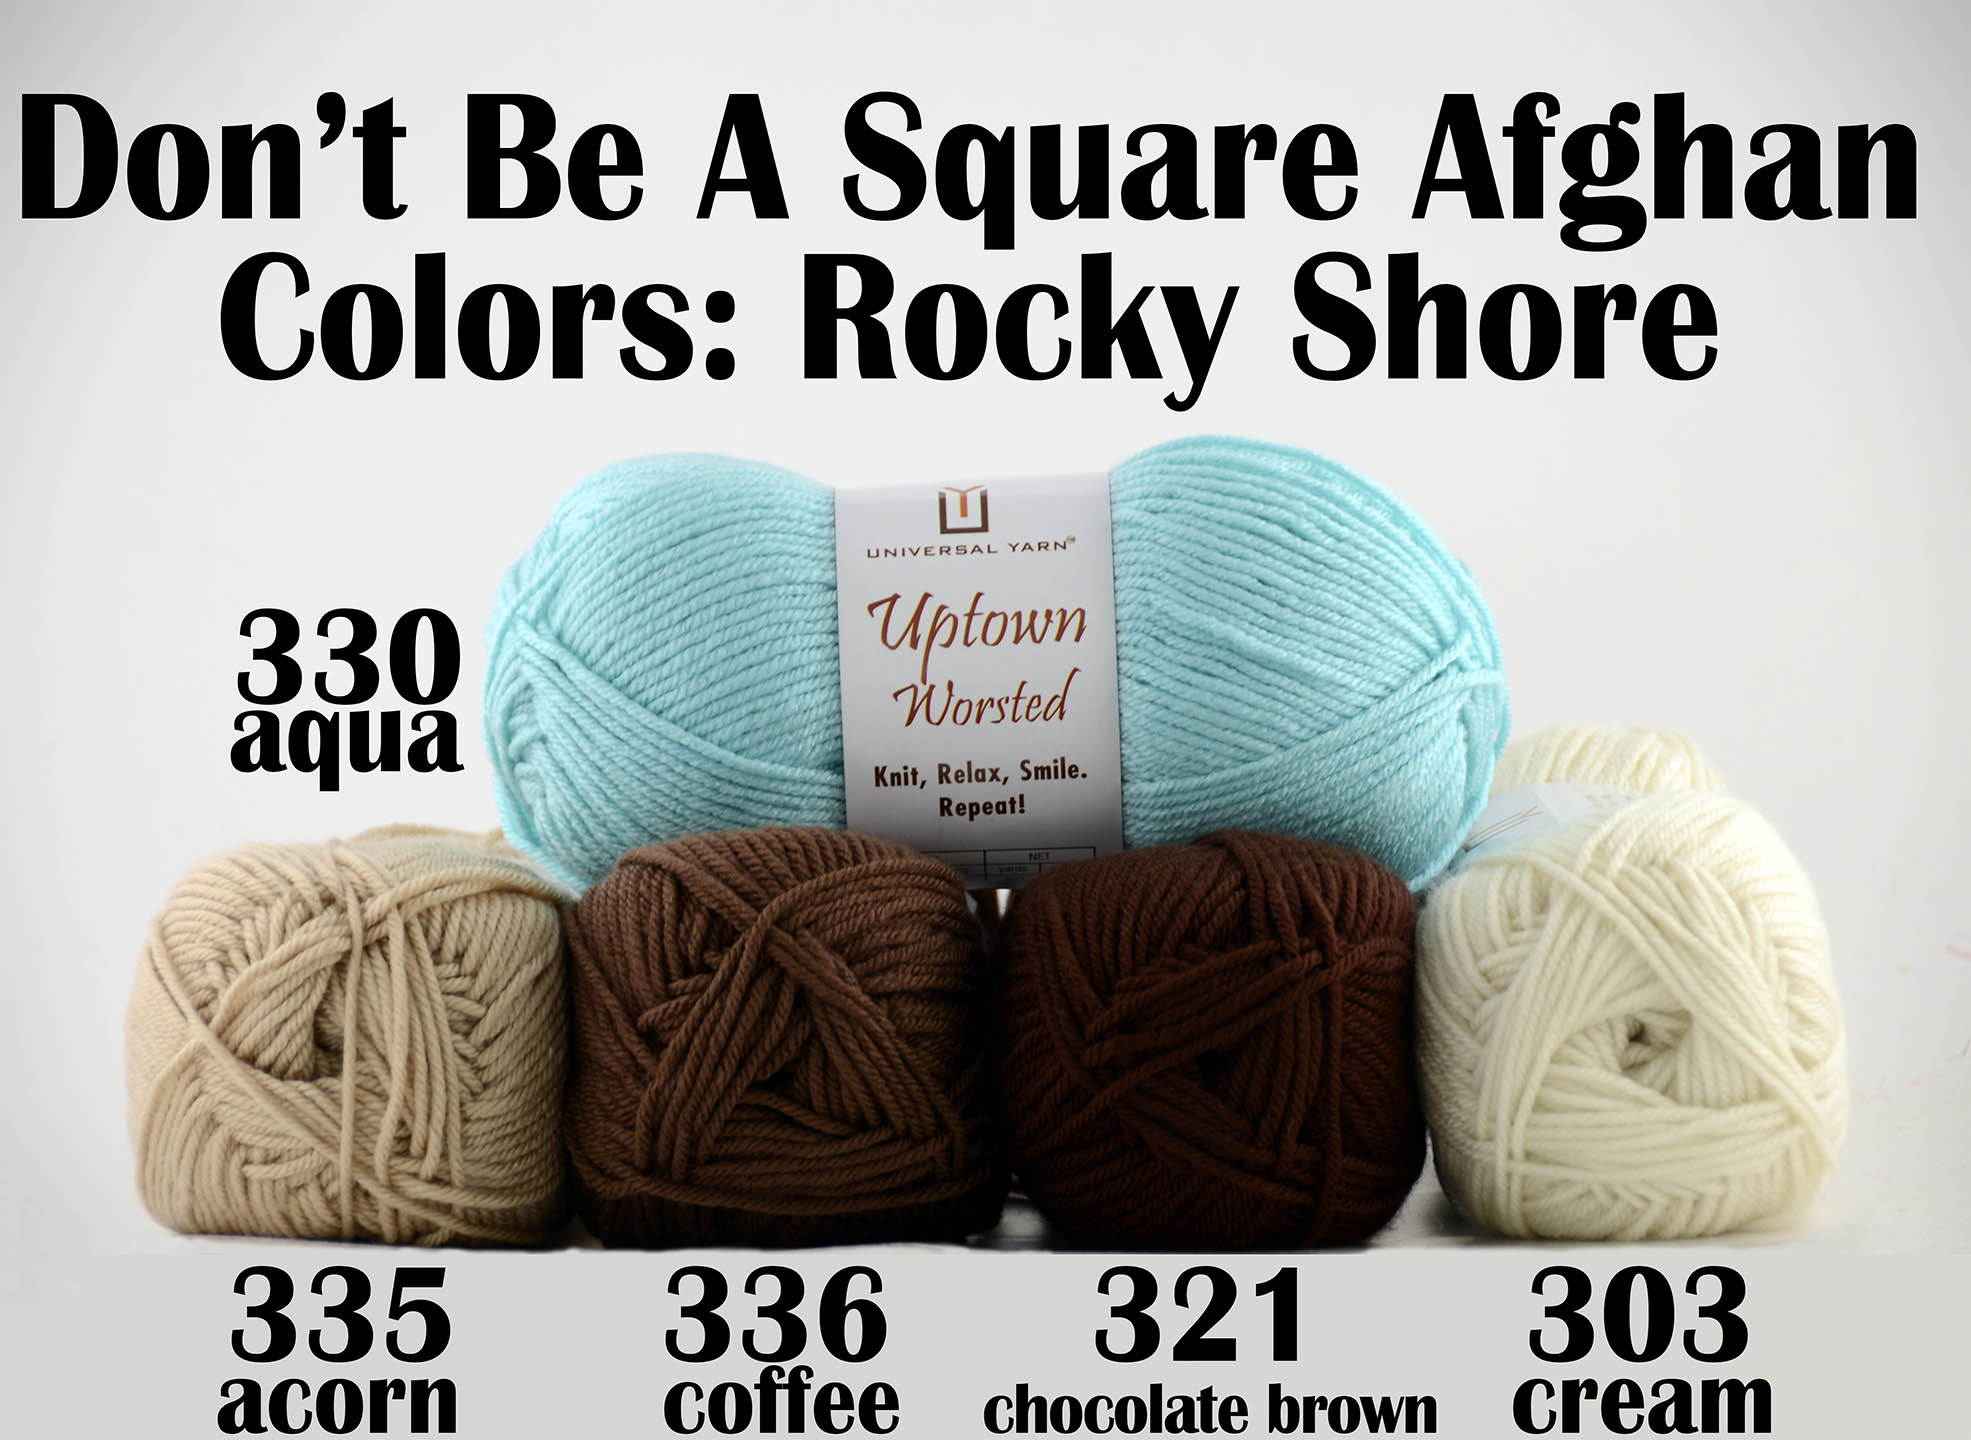 Afghan Knitalong - Rocky Shore colors